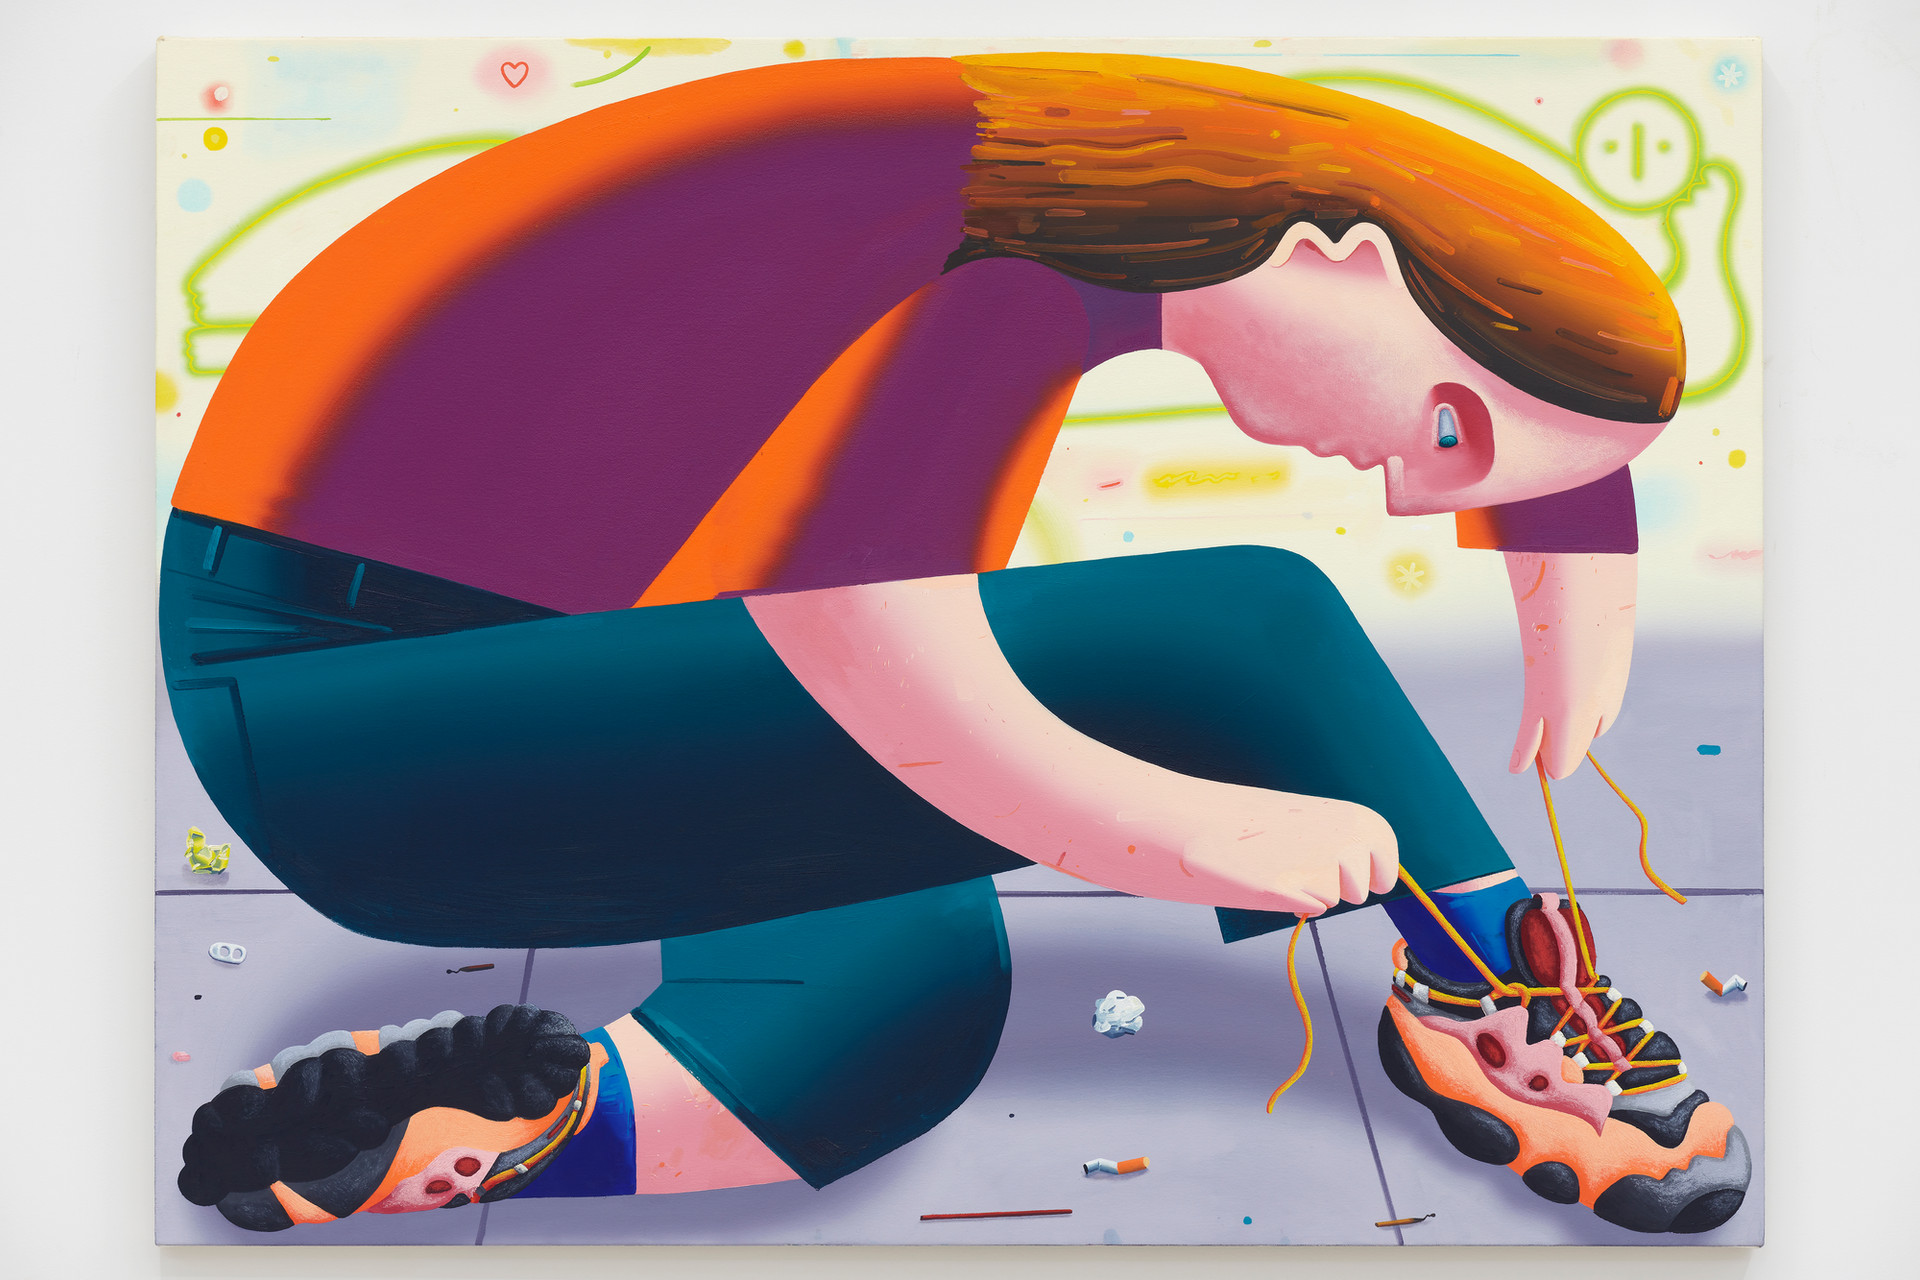 Eleanor Swordy  Tightening, 2019  Oil on canvas  36 x 48 inches